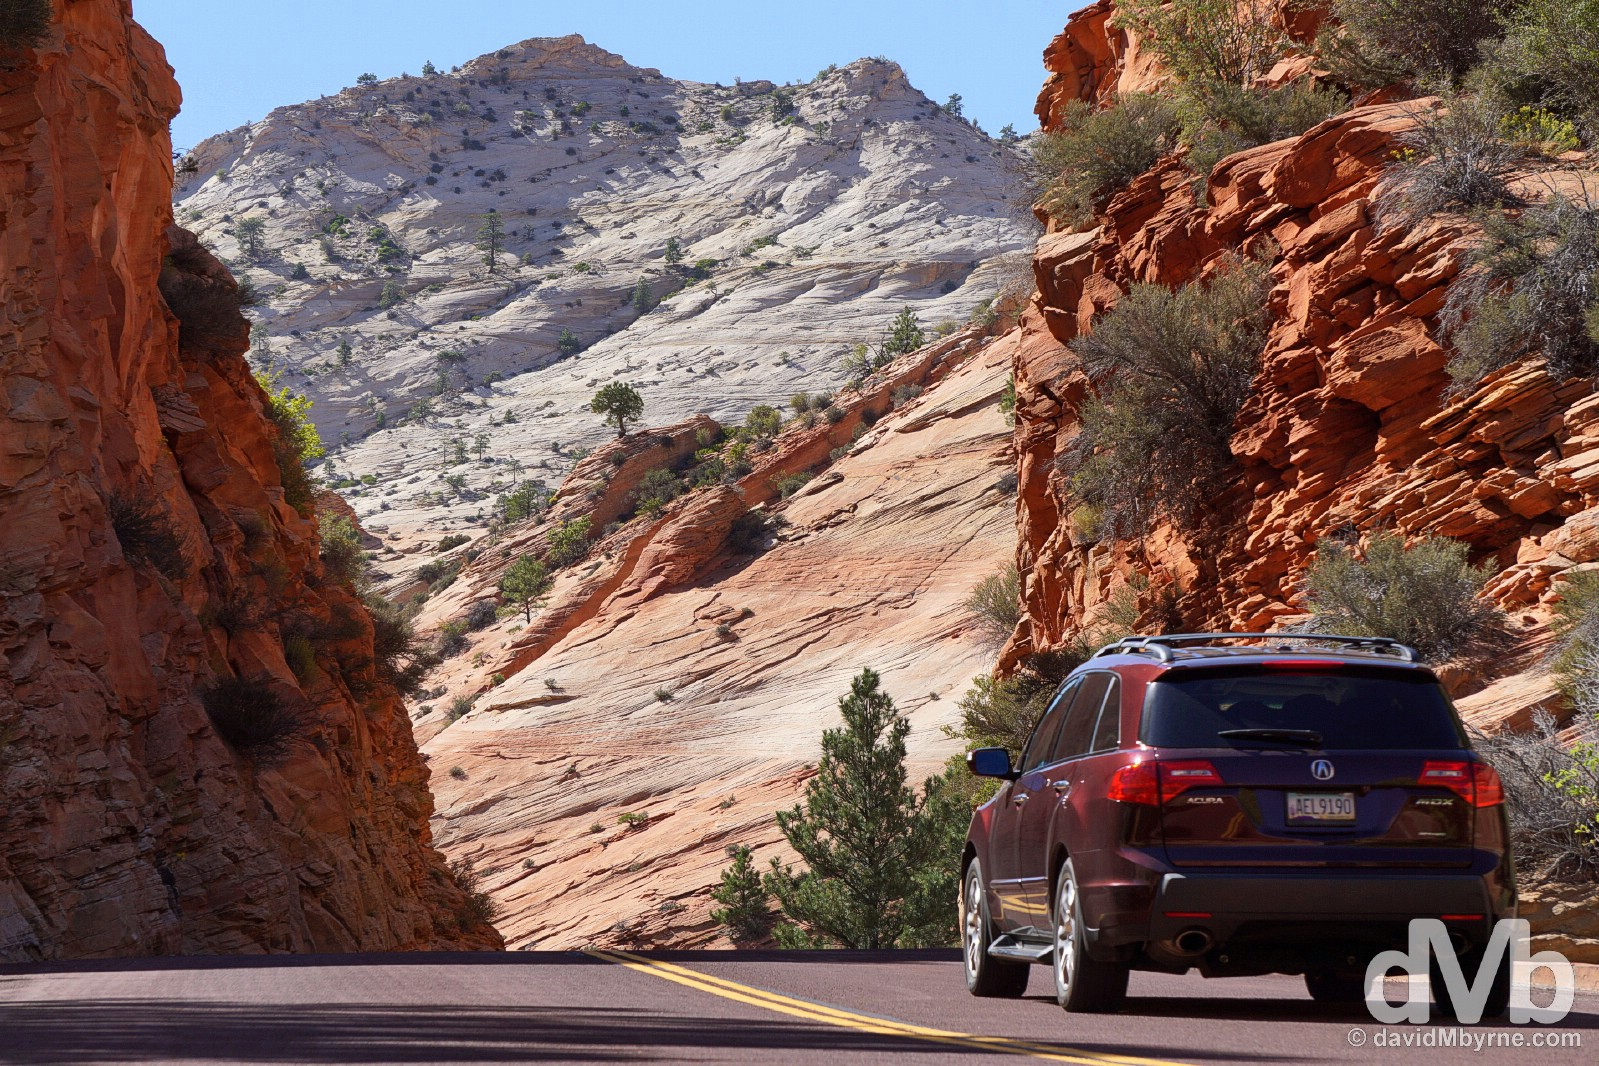 On the Mount Carmel Scenic Byway in Zion National Park, southern Utah, USA. September 8, 2016.